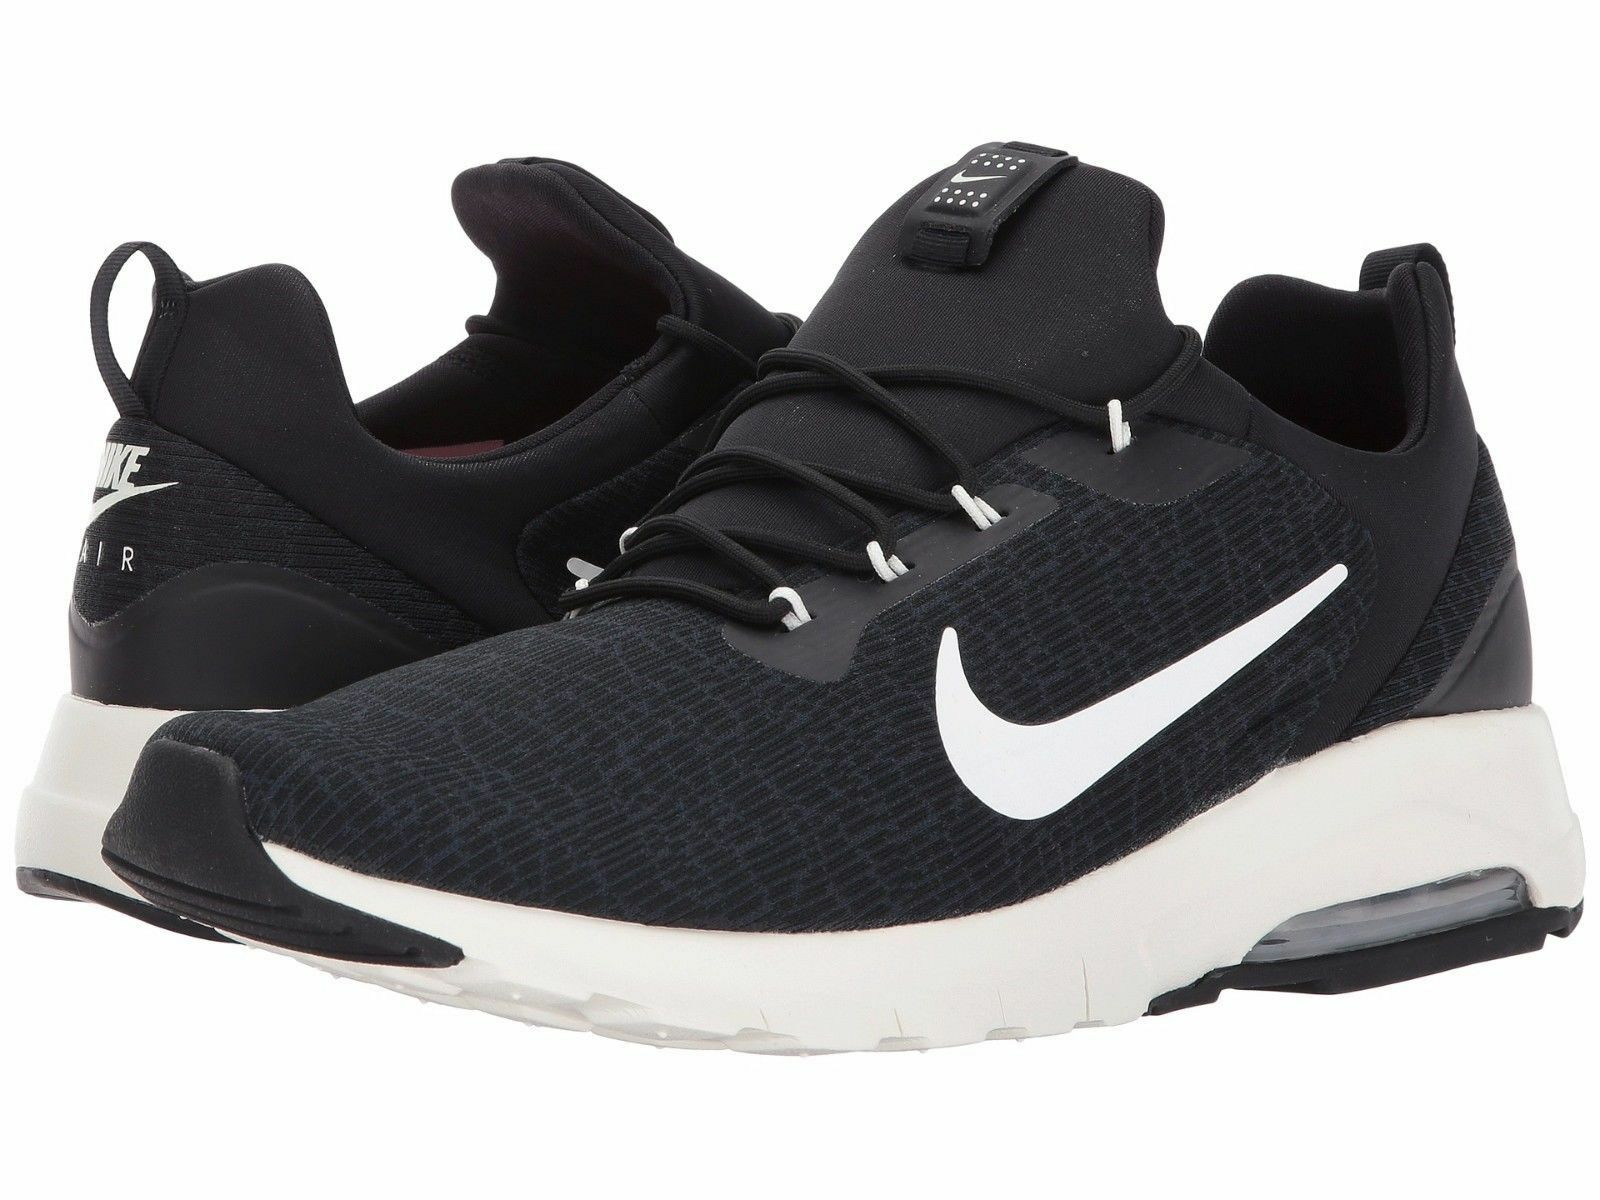 reputable site 831b9 b1684 Men s Nike Air Max Max Max Motion Racer Running Black Sail Sizes 8-12